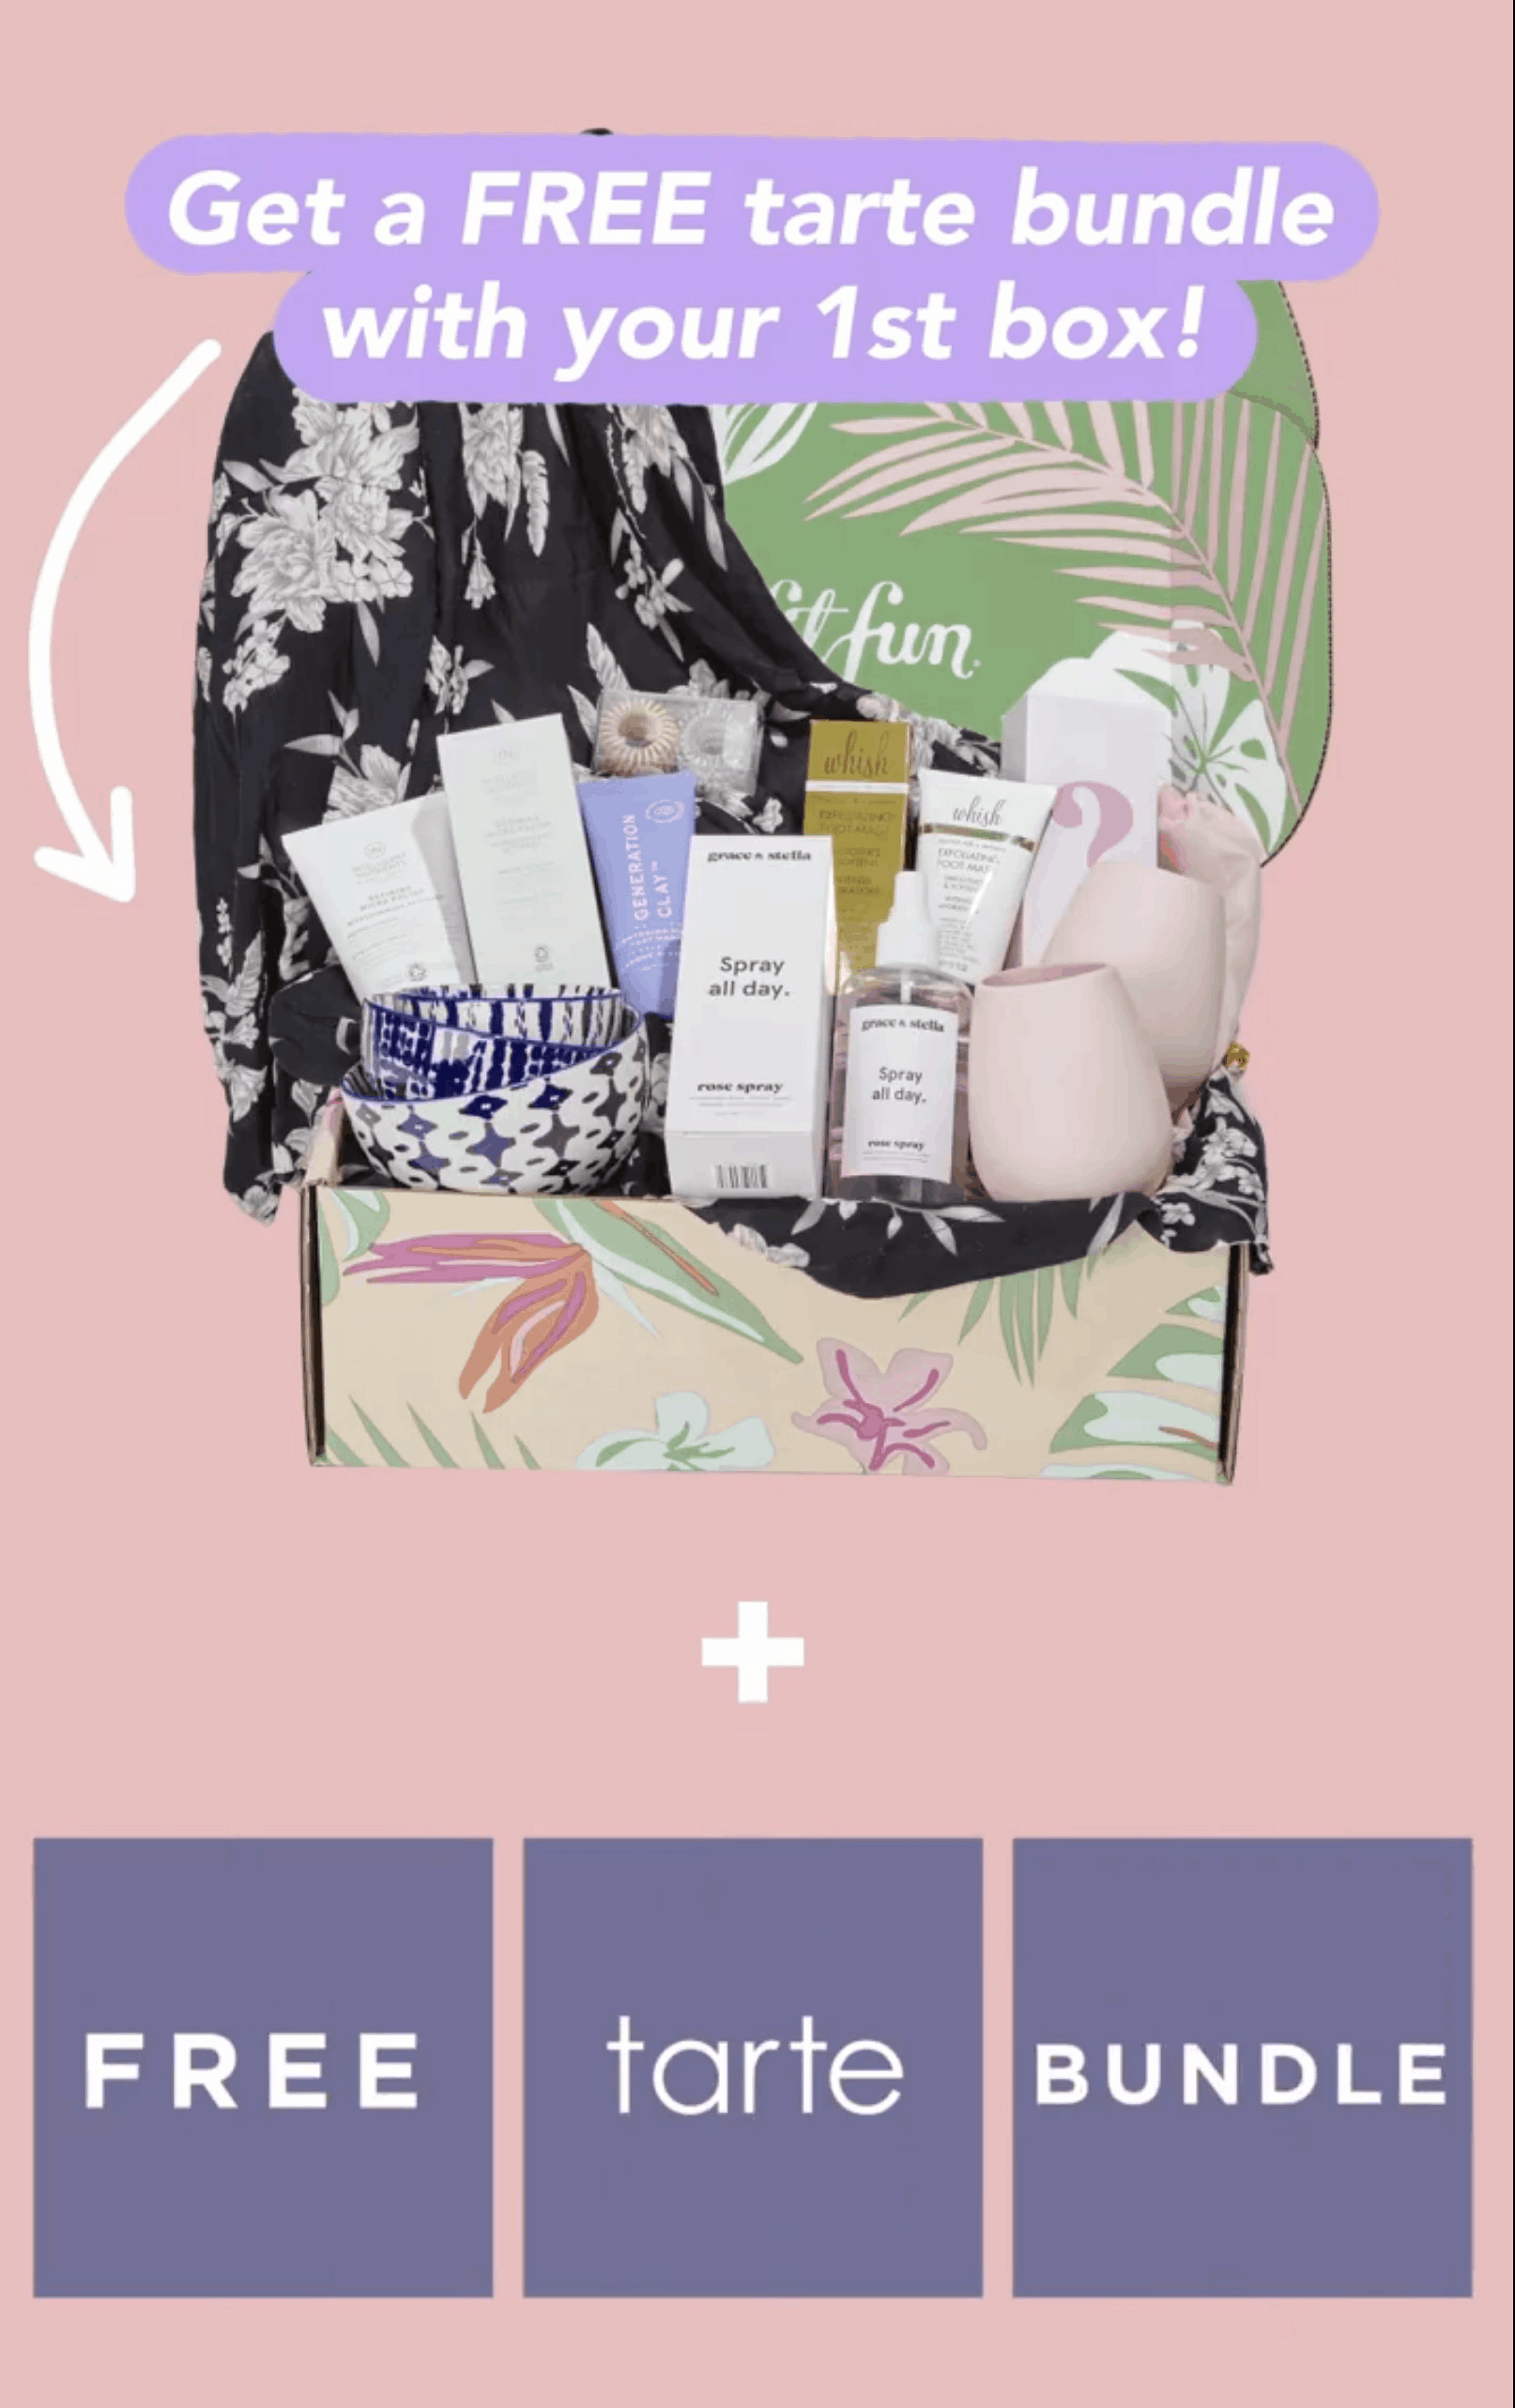 FabFitFun Sale: FREE $125 Value Tarte Cosmetics Bundle!